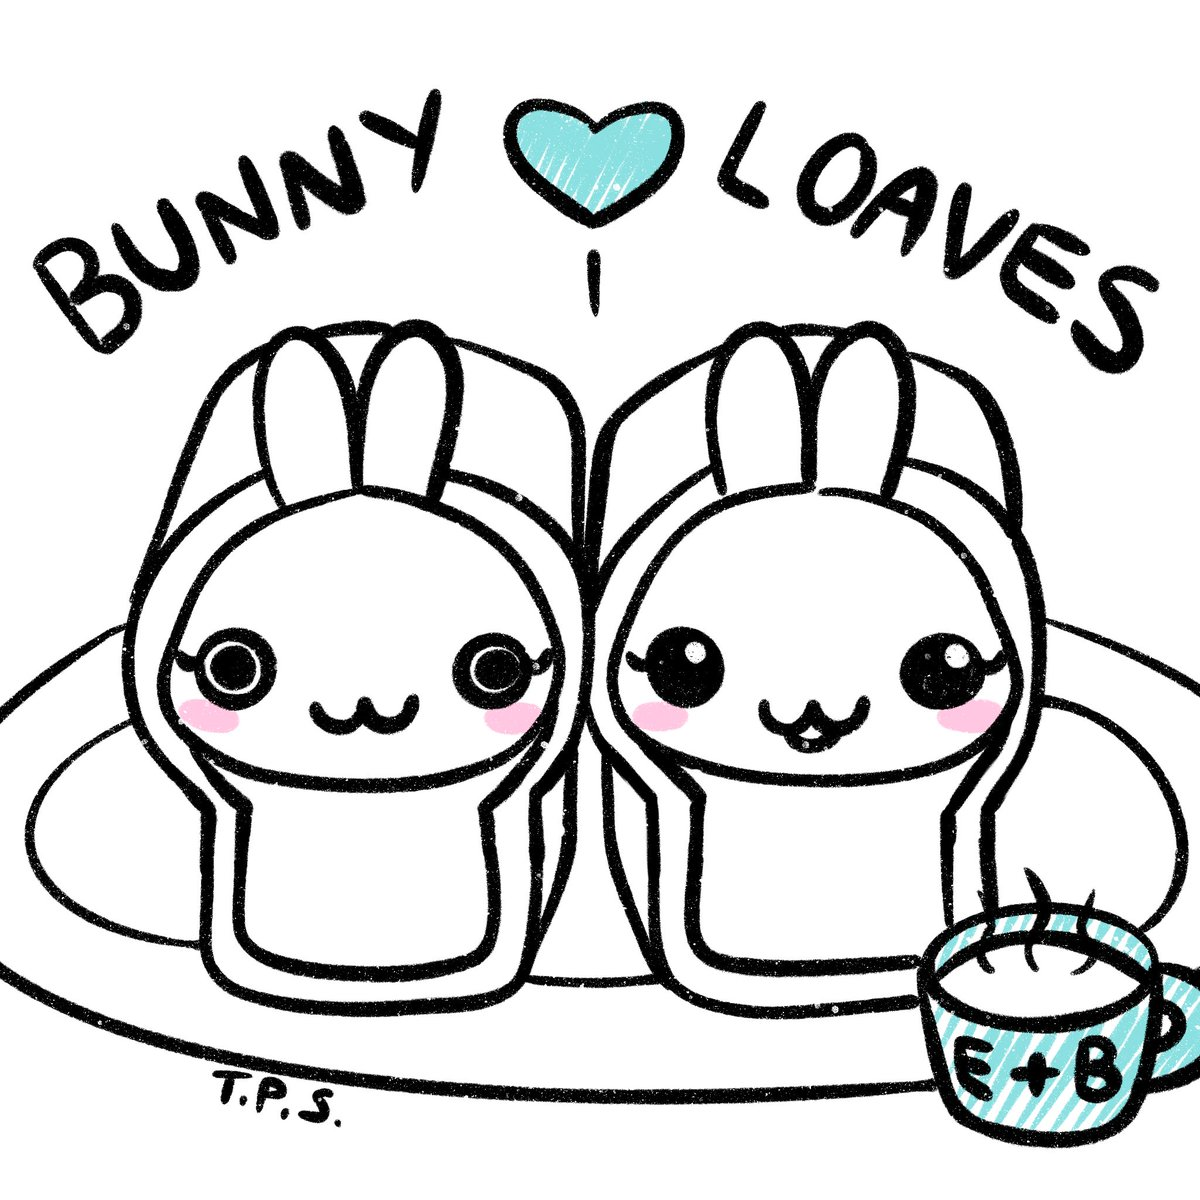 Day 16/100: Let me introduce you to another fine type of bunny bakery. You'll spot a bunny loaf when a bunny is sleeping with their legs all tucked in. They're best served with snuggles 💖  #the100dayproject #100thingsmybunniesdo #BunnyLoaf #kawaiiart https://t.co/wPTfkLu2SV